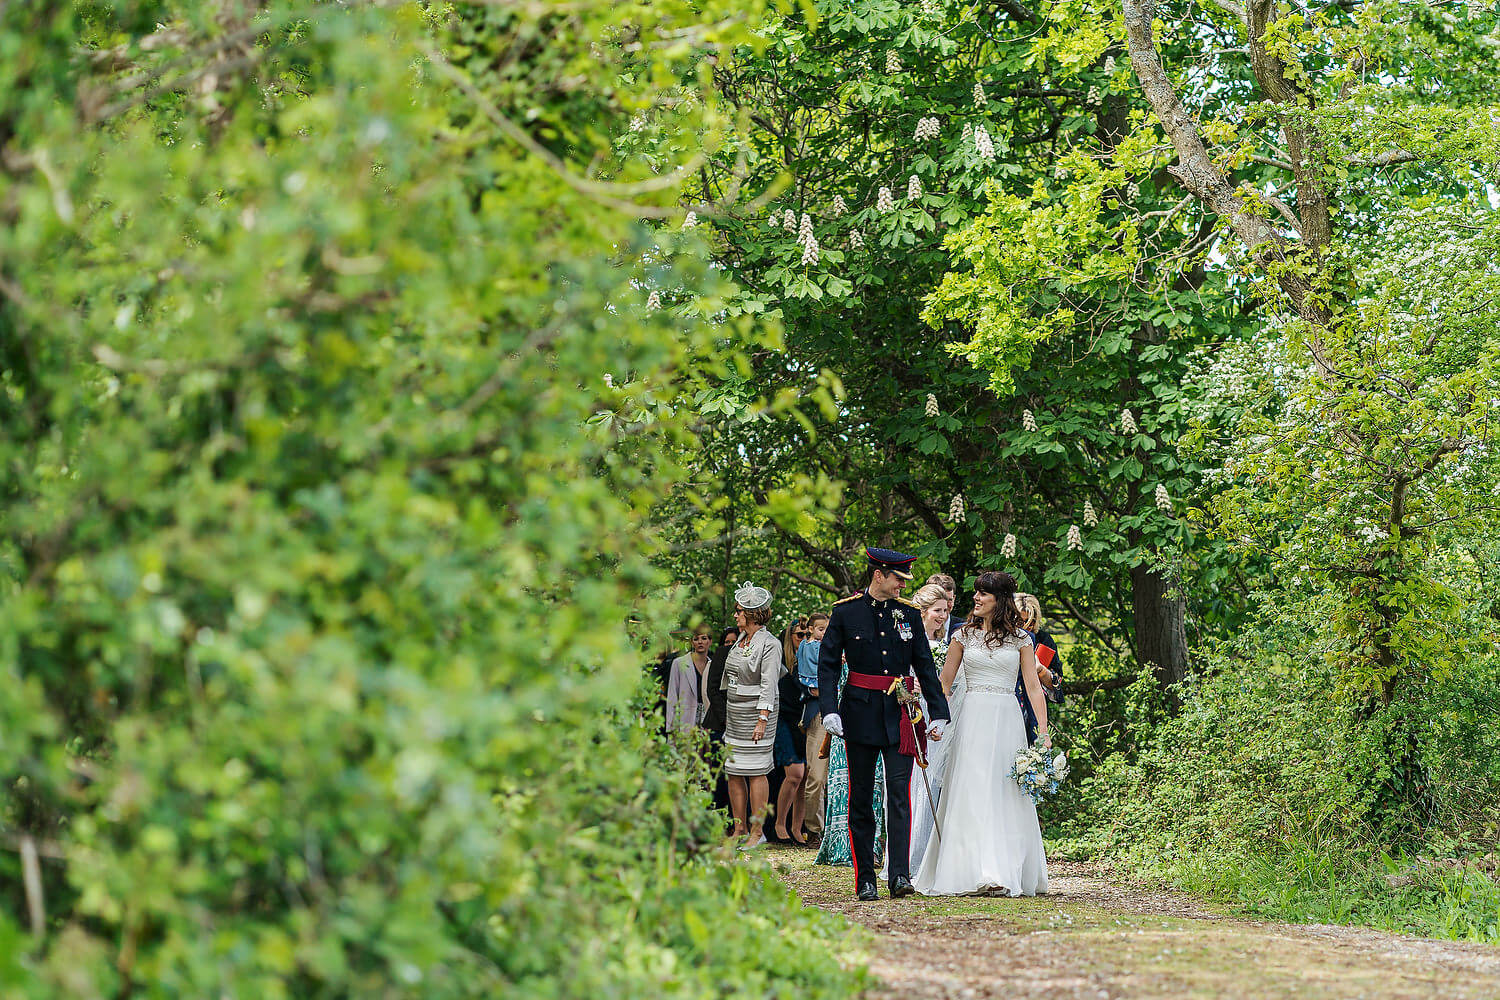 bride and groom walking with wedding guests